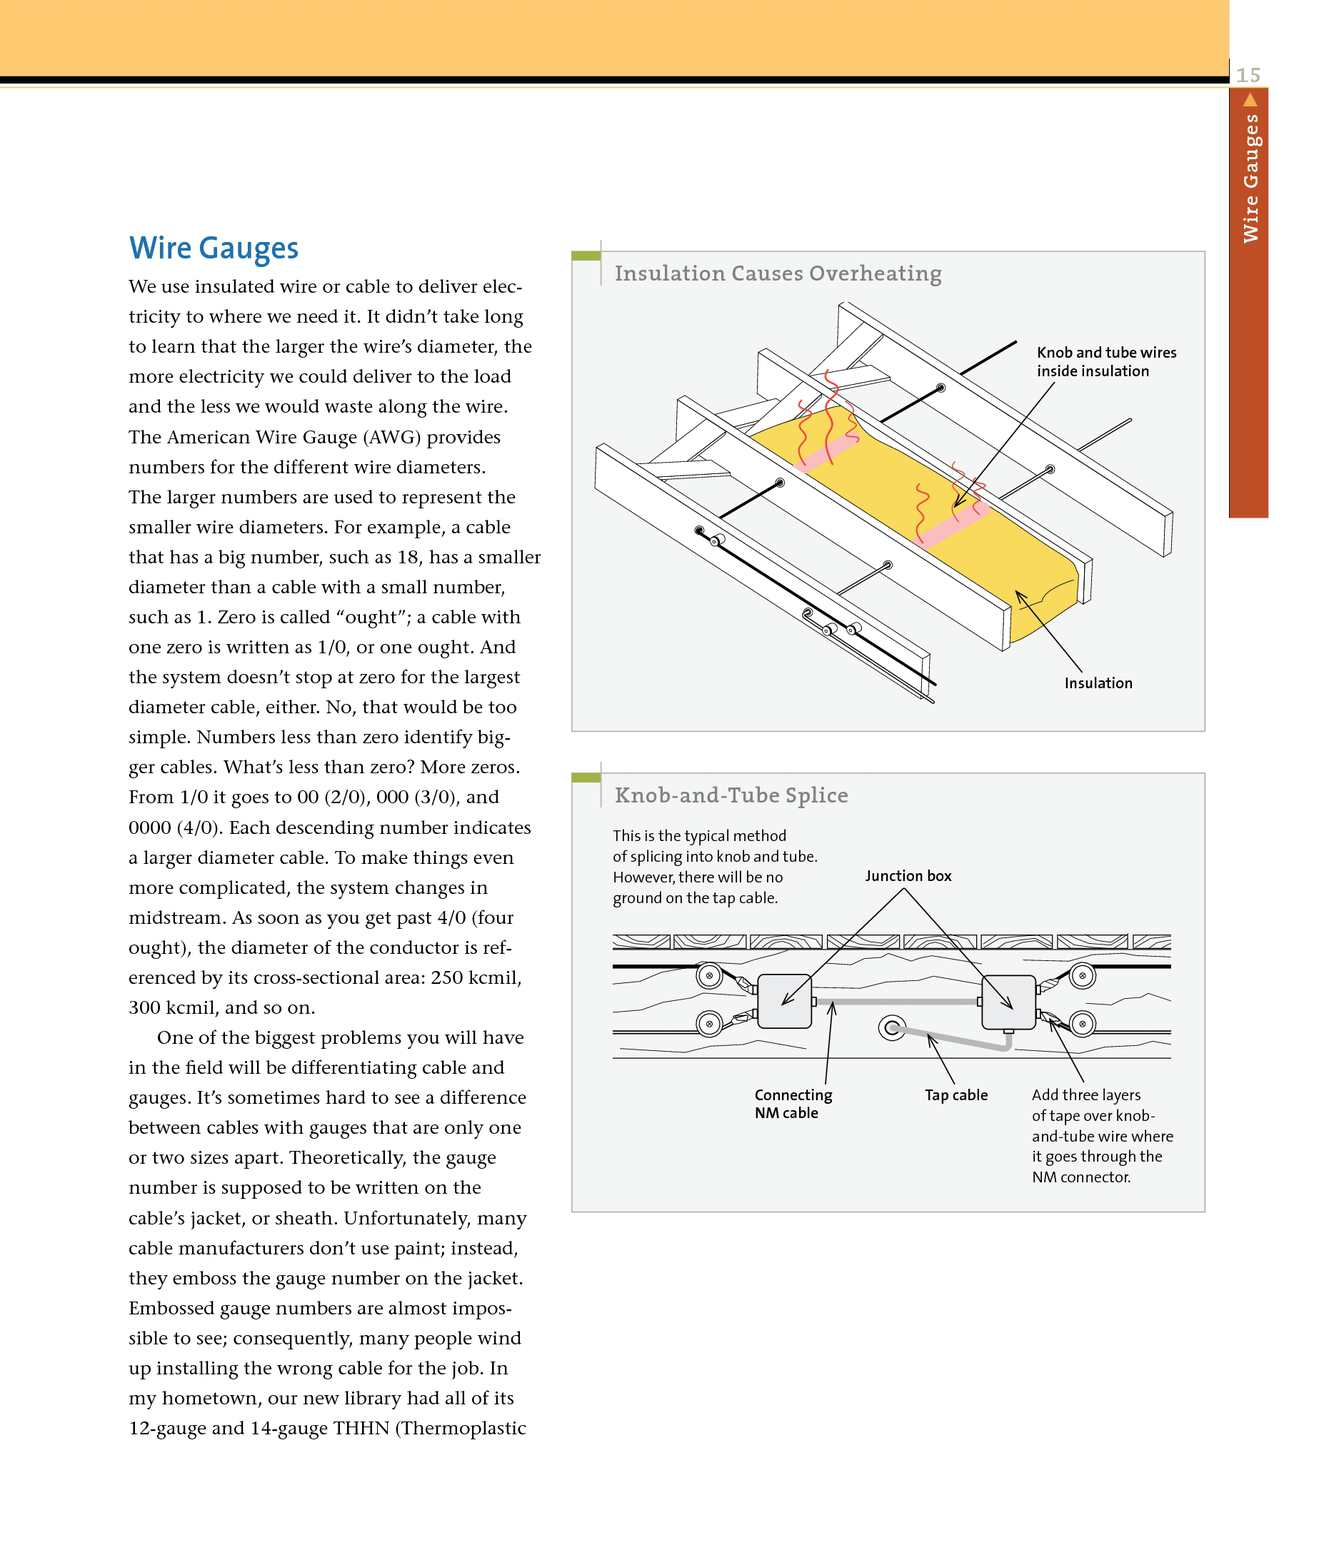 Wiring A House 4th Edition Preview Calameo Downloader Knob And Tube Diagram Page 18